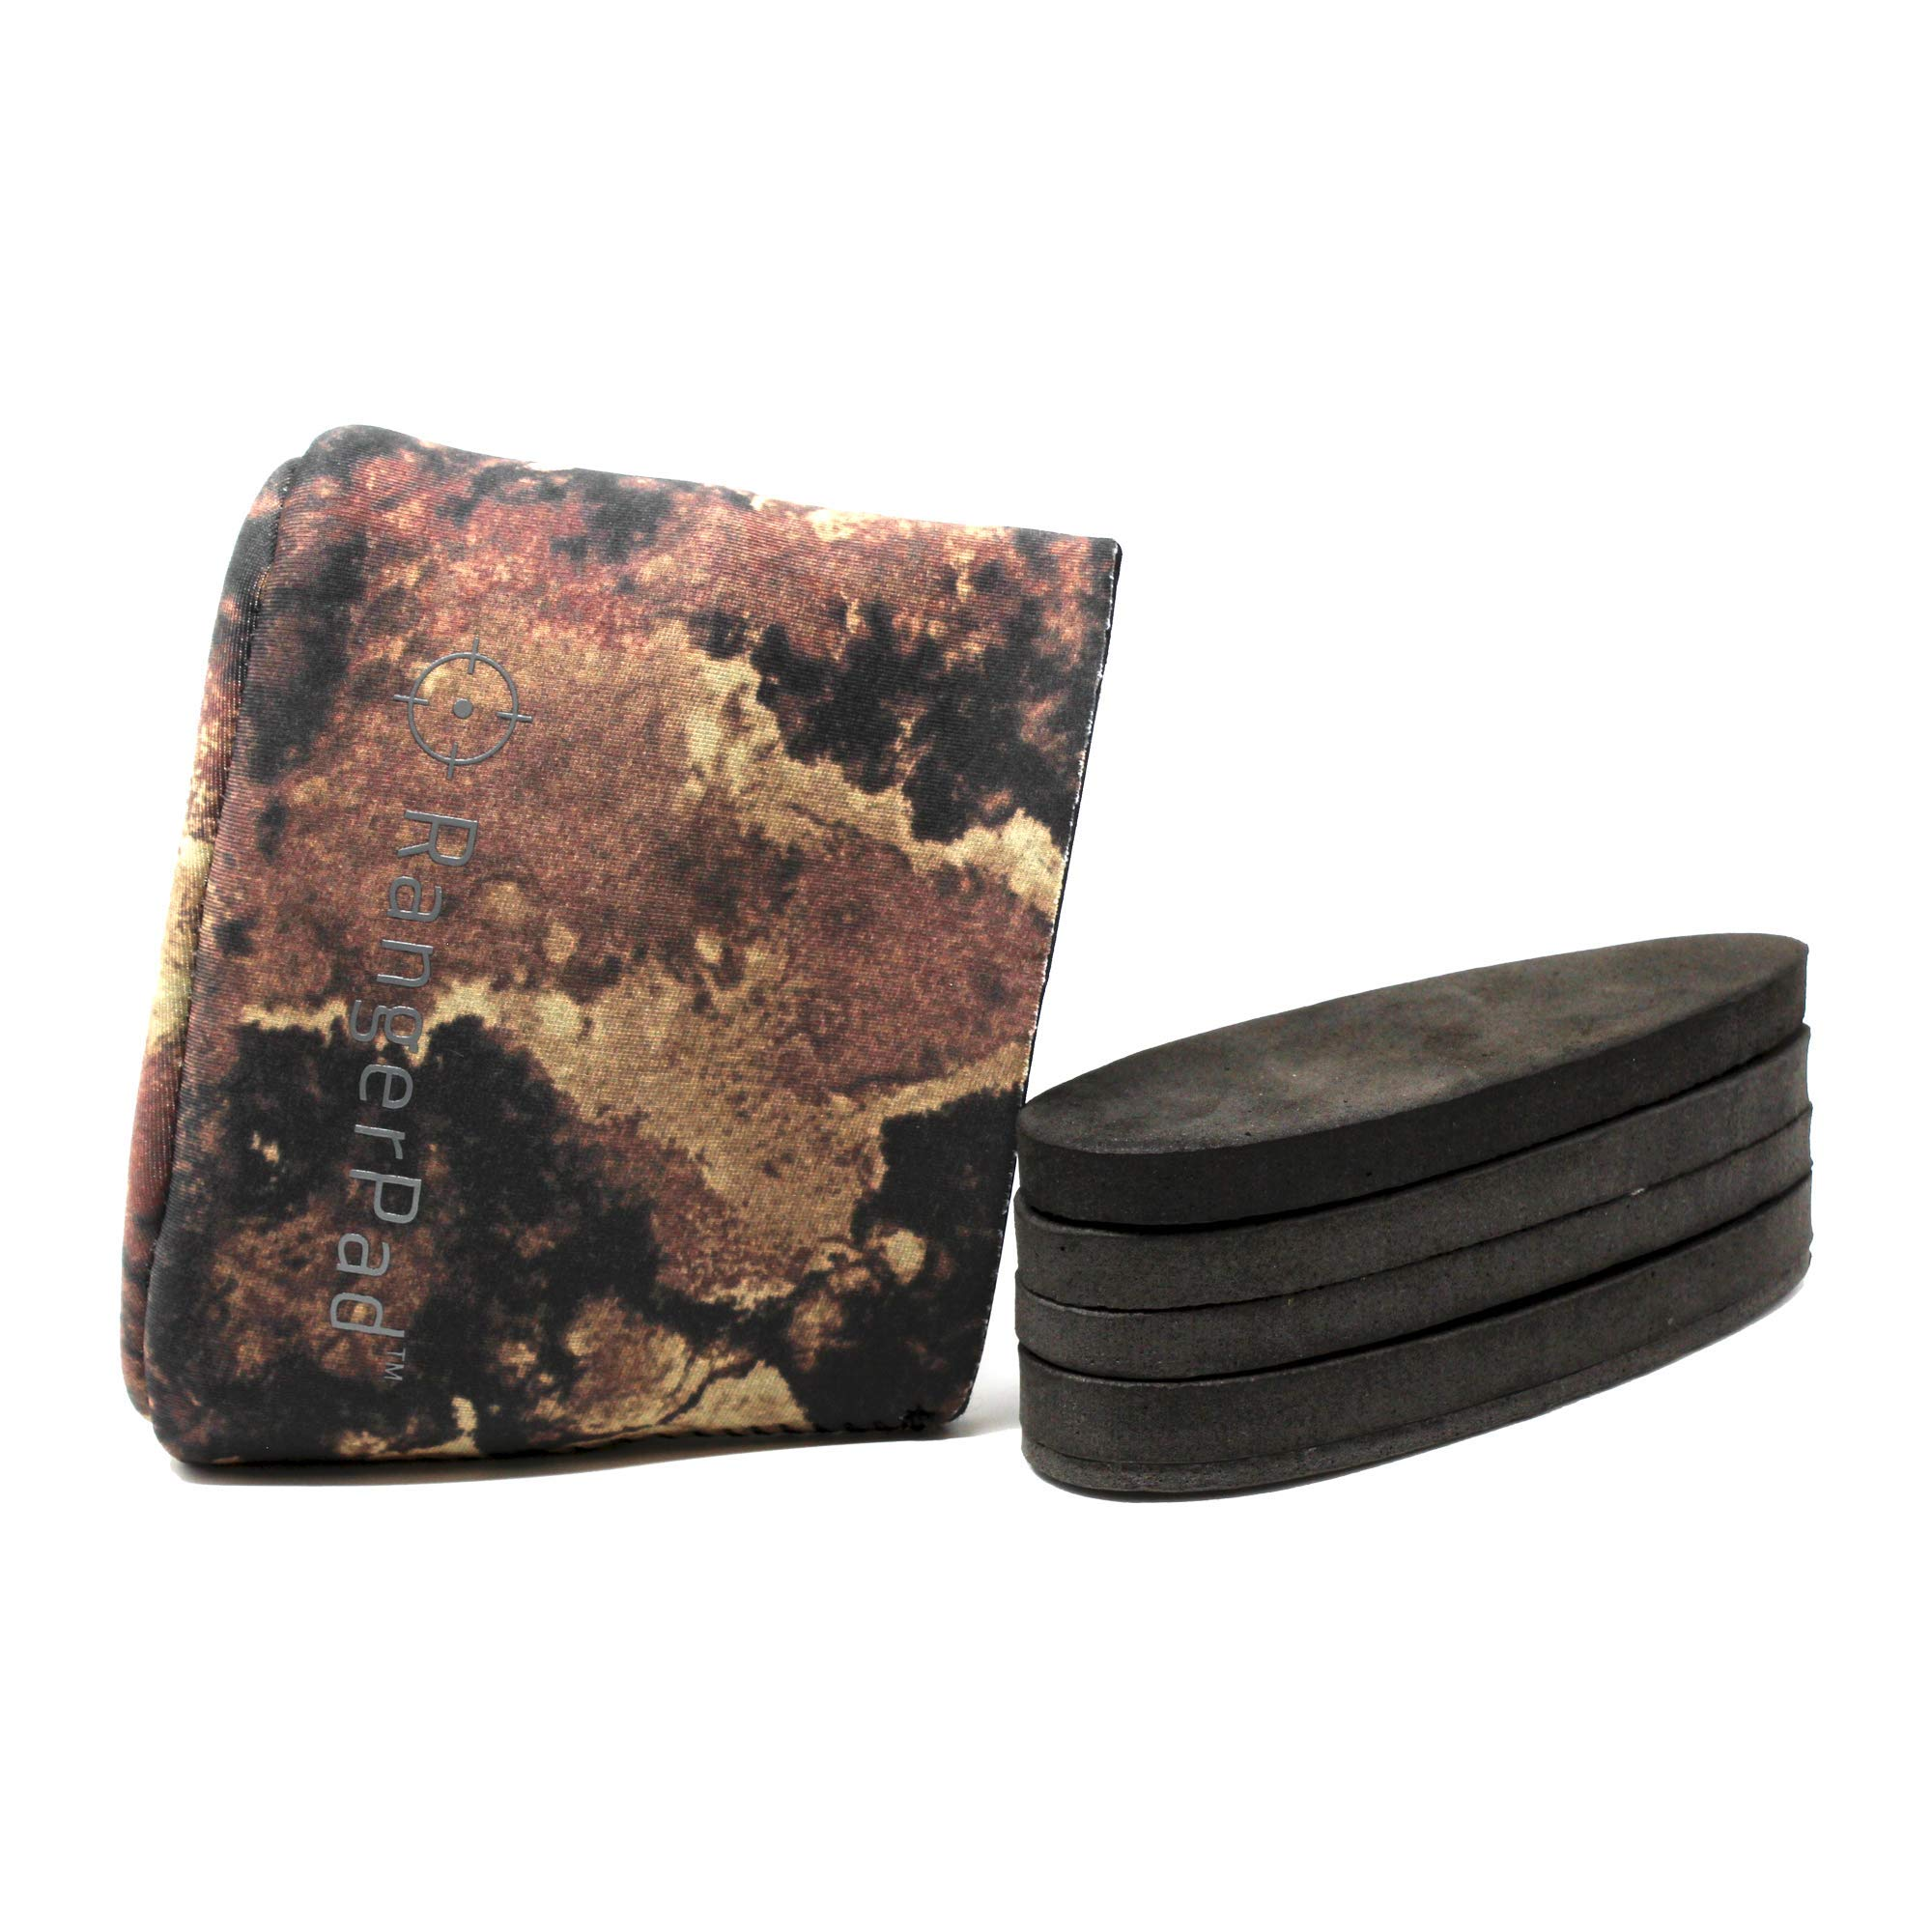 RangerPad Gel Recoil Arm Pad - Slip On Rifle Stock Cover with Adjustable Foam Padding Inserts & Gel Pad for Rifles, Shotguns & More - Relieve Shoulder & Arm Pain - Fits Most (Brown Camo) by RangerPad